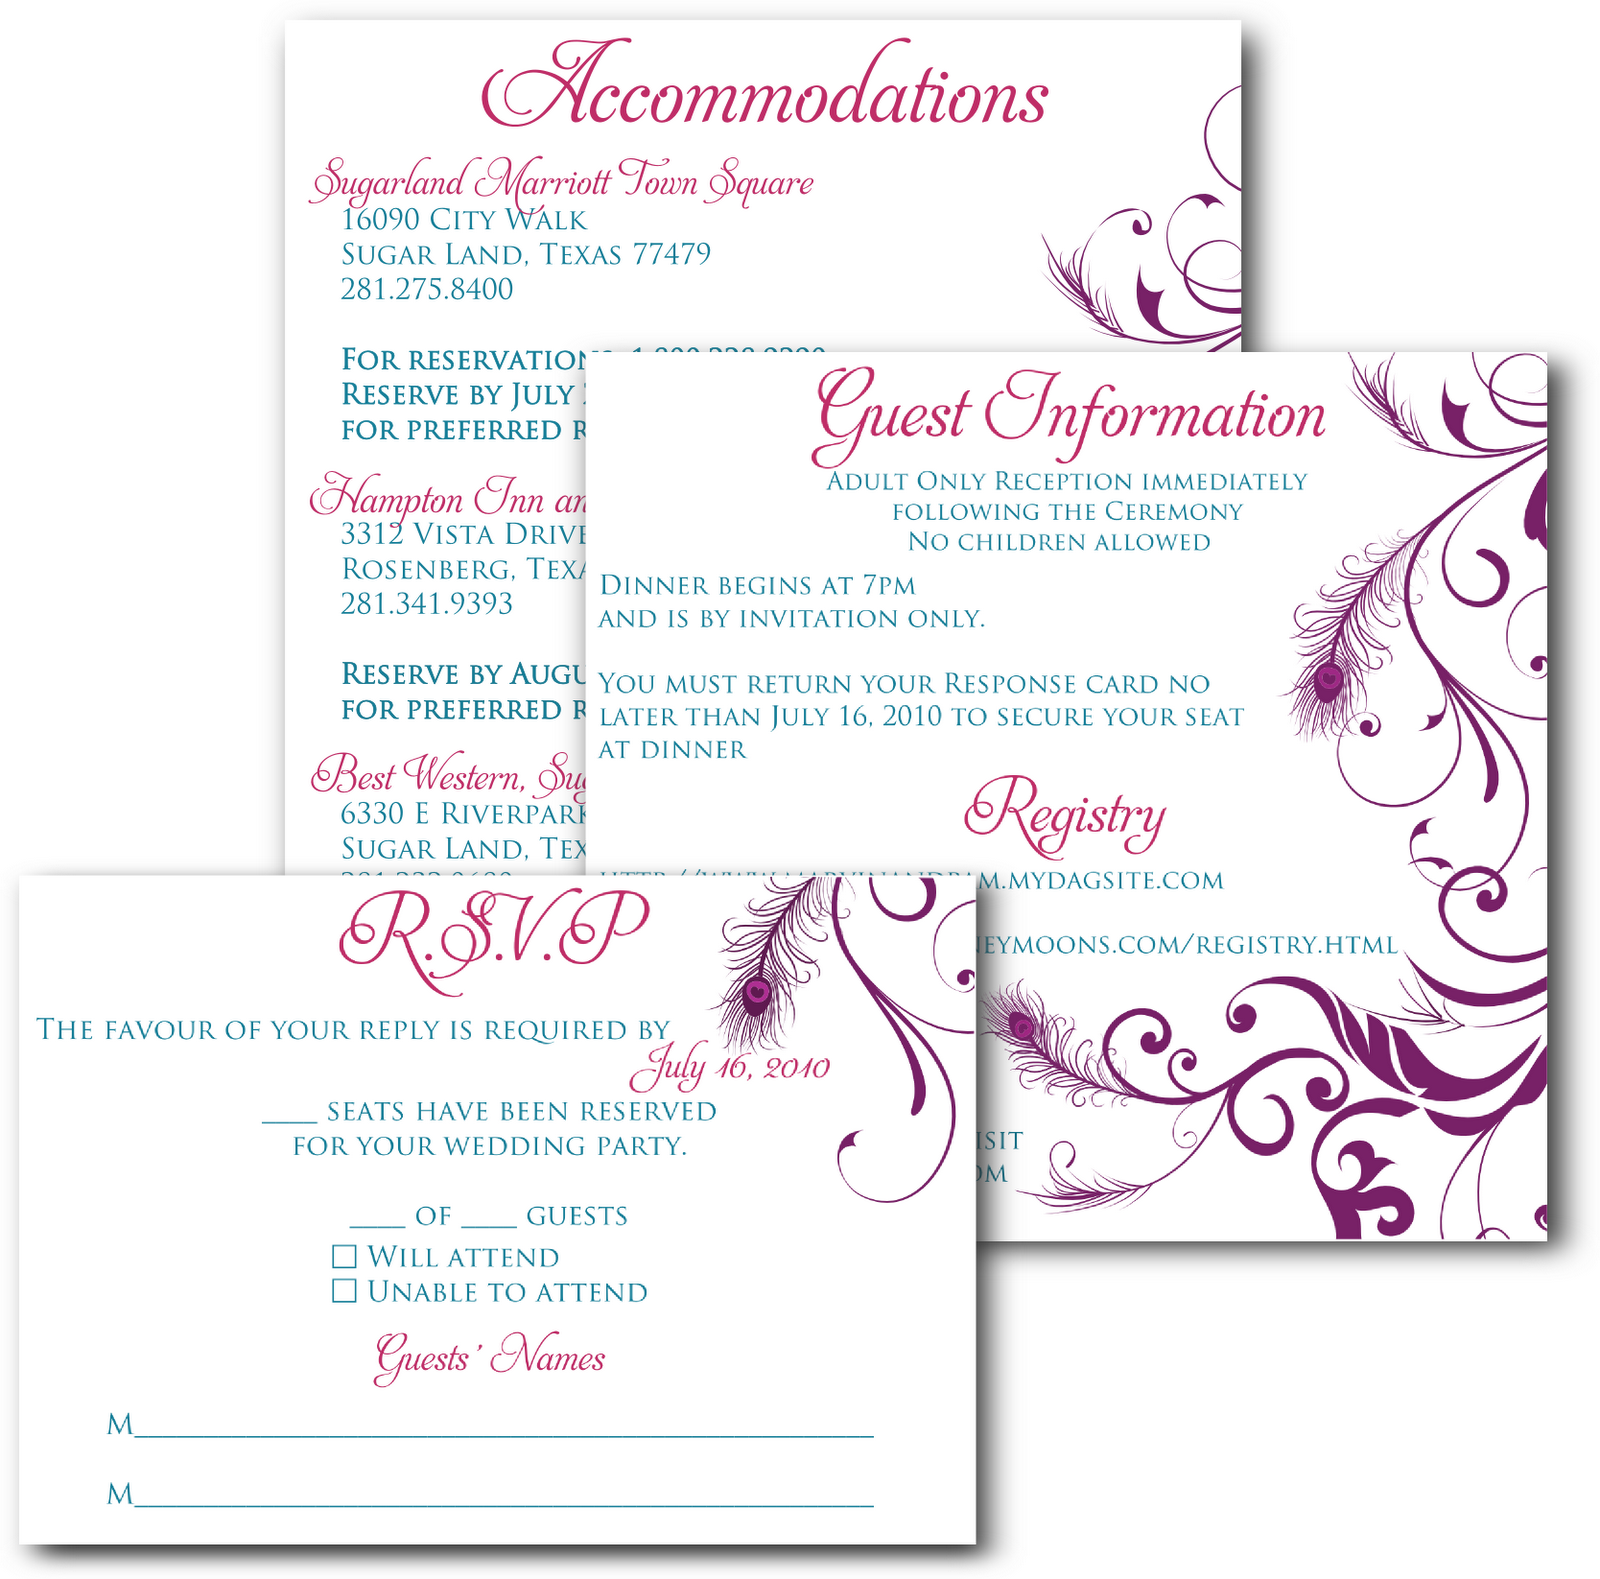 Wedding Invitations And Inserts Google Search Wedding - Wedding reception invitation templates word